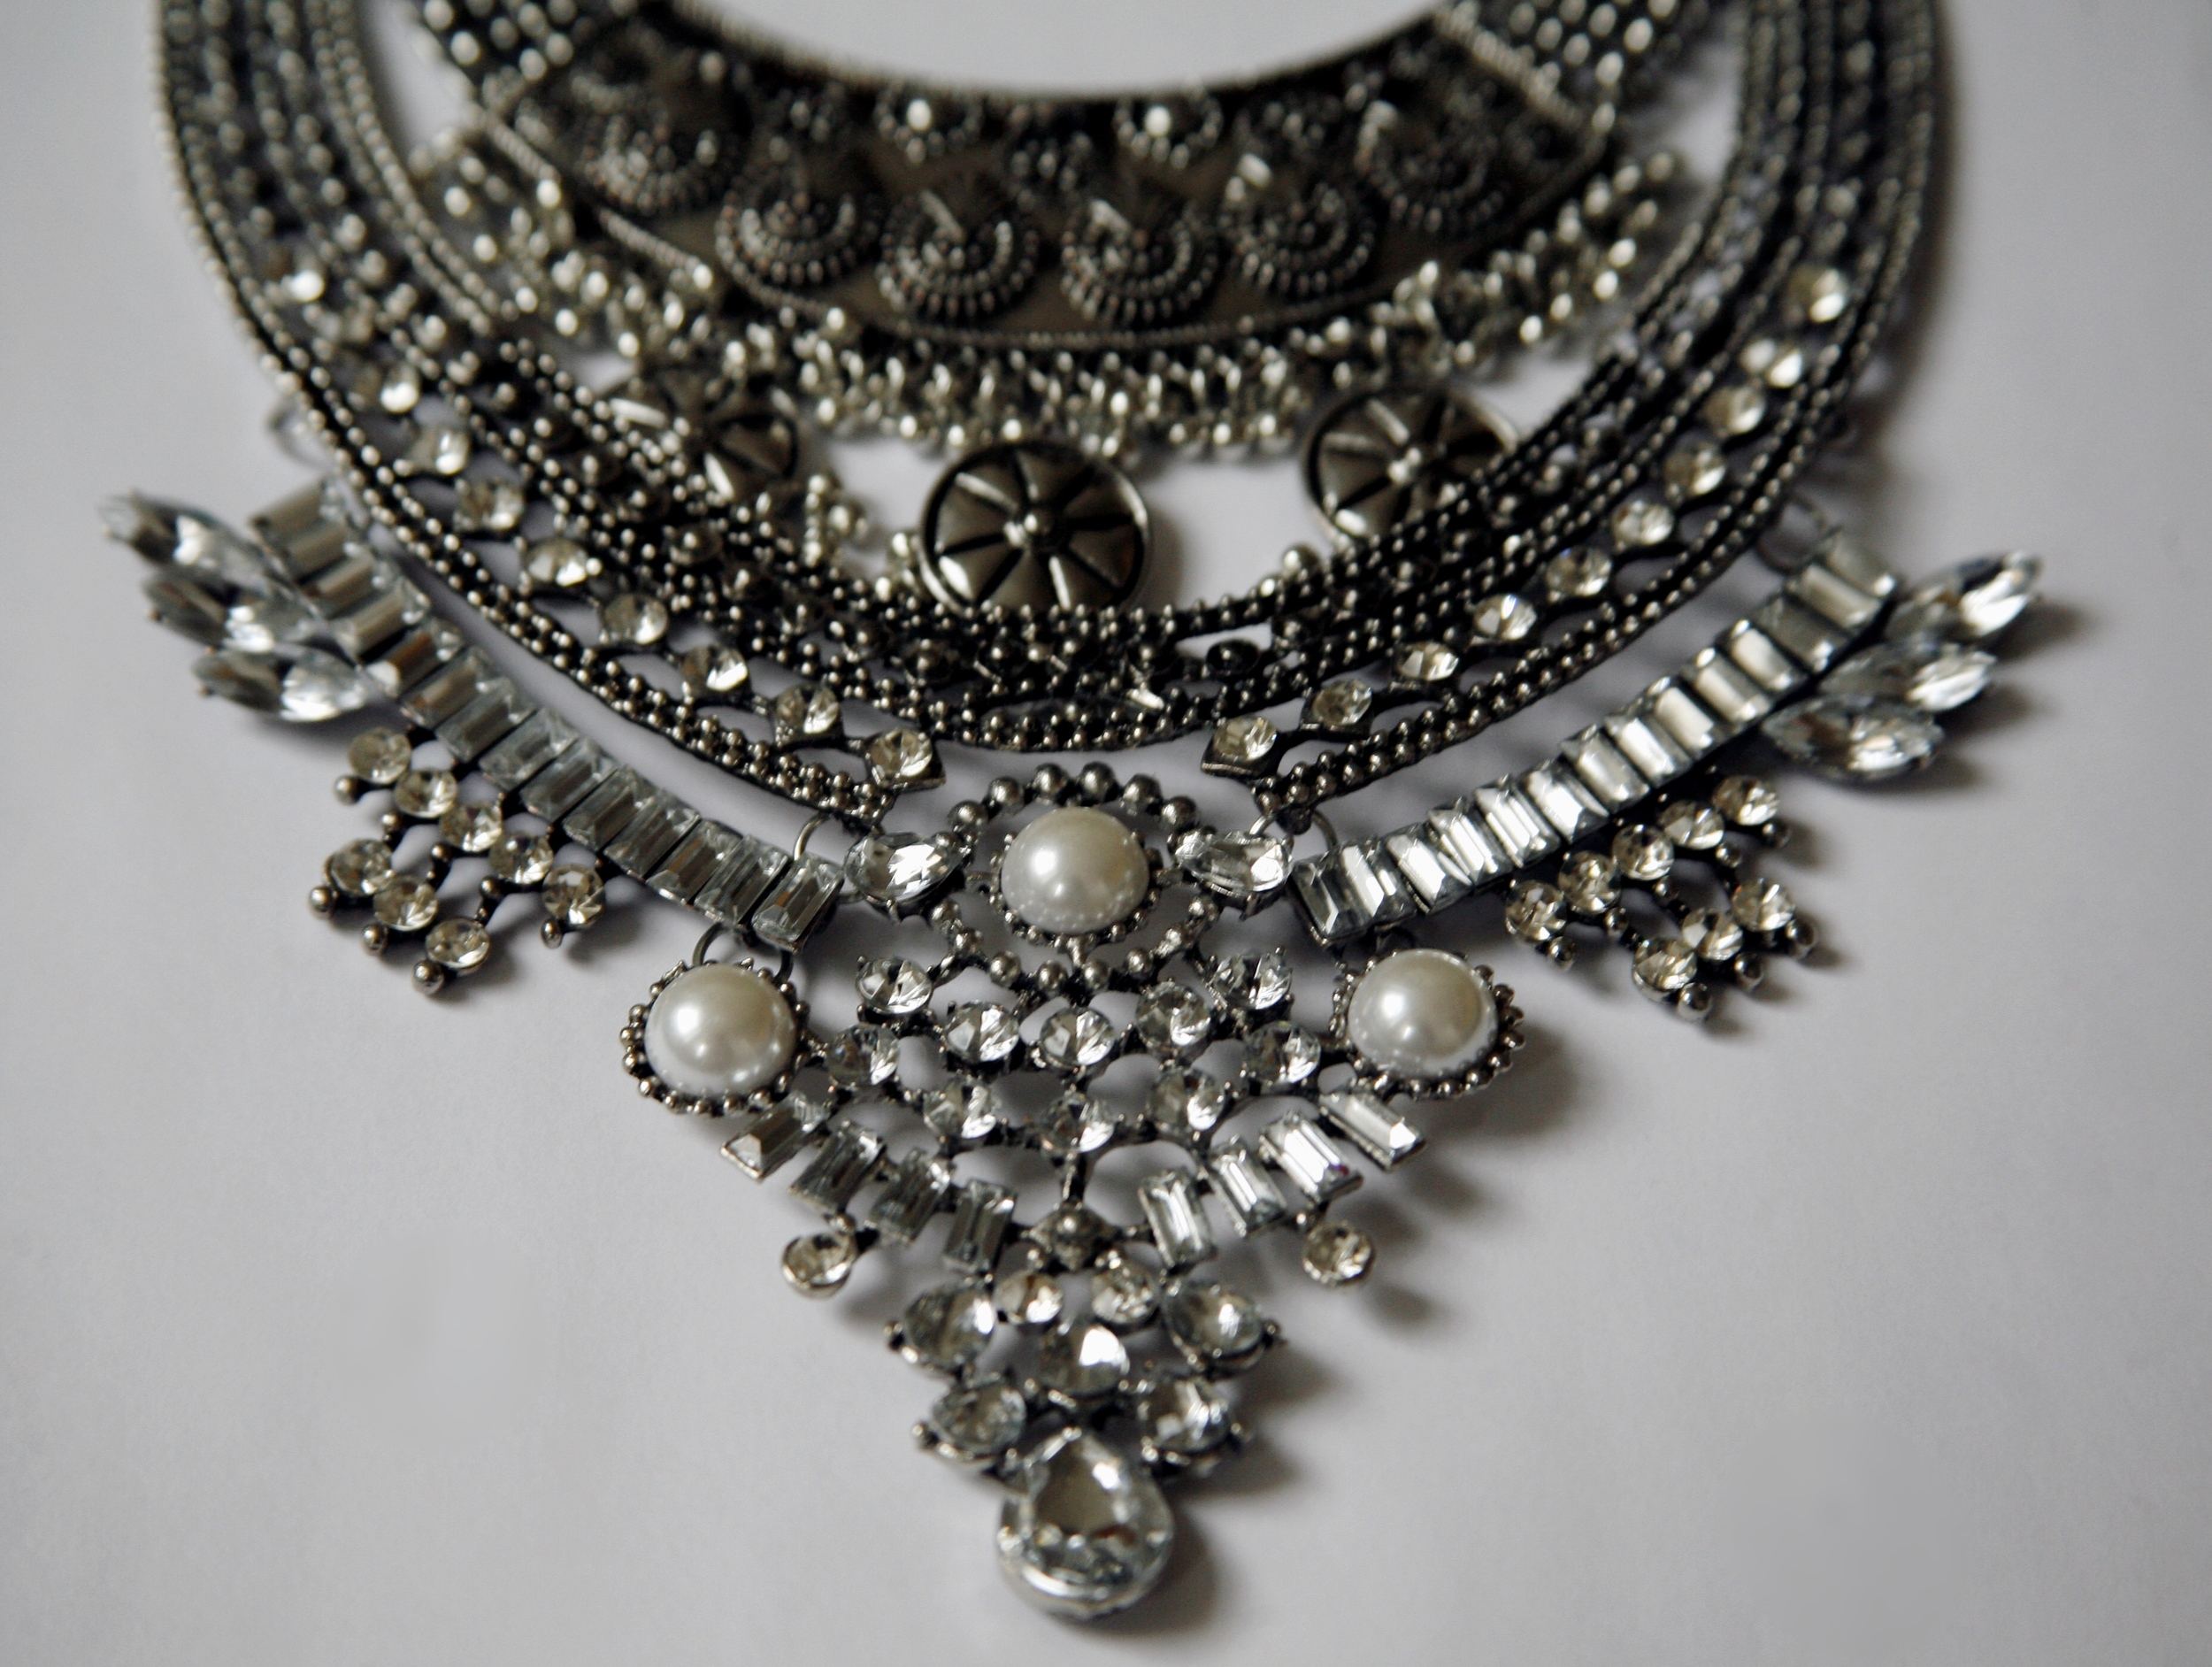 Details from the  Amazon  necklace.